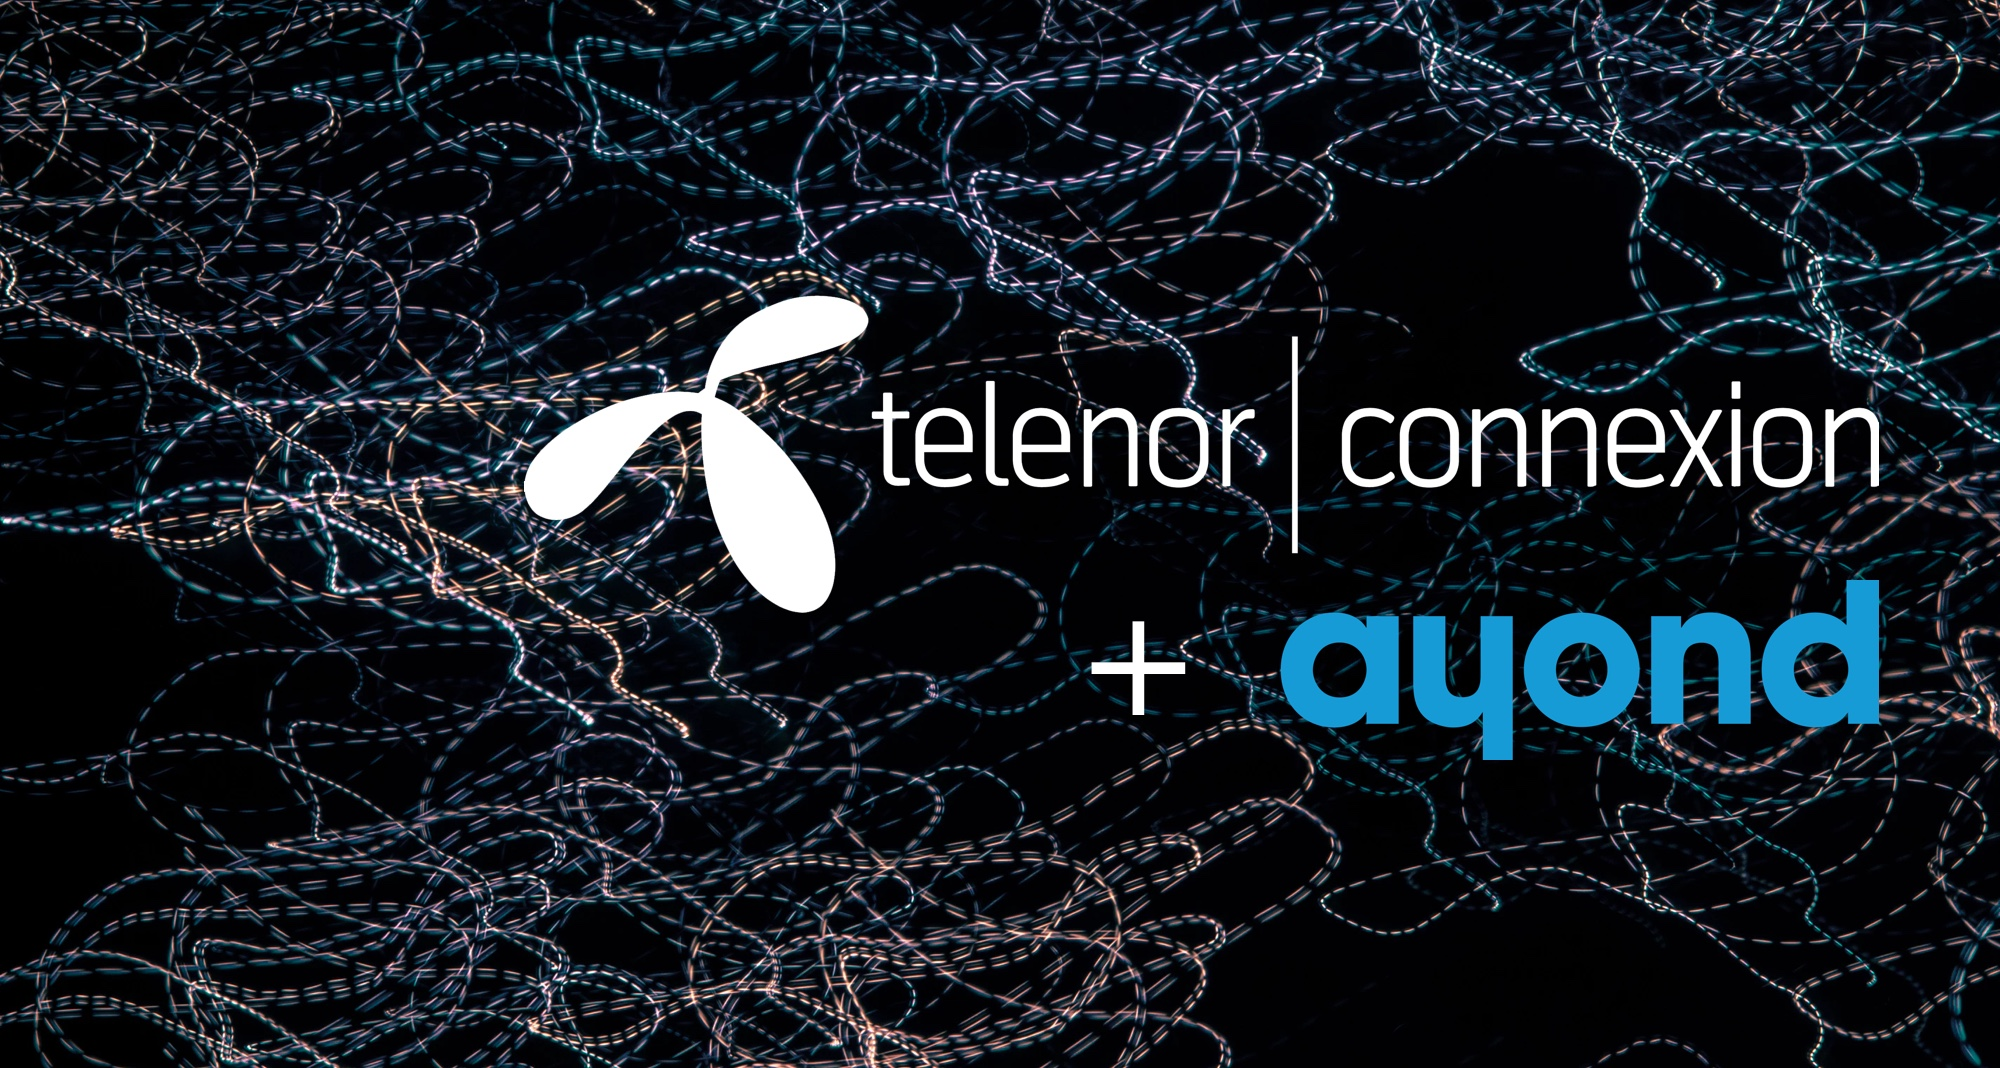 ayond signs partnership with Telenor